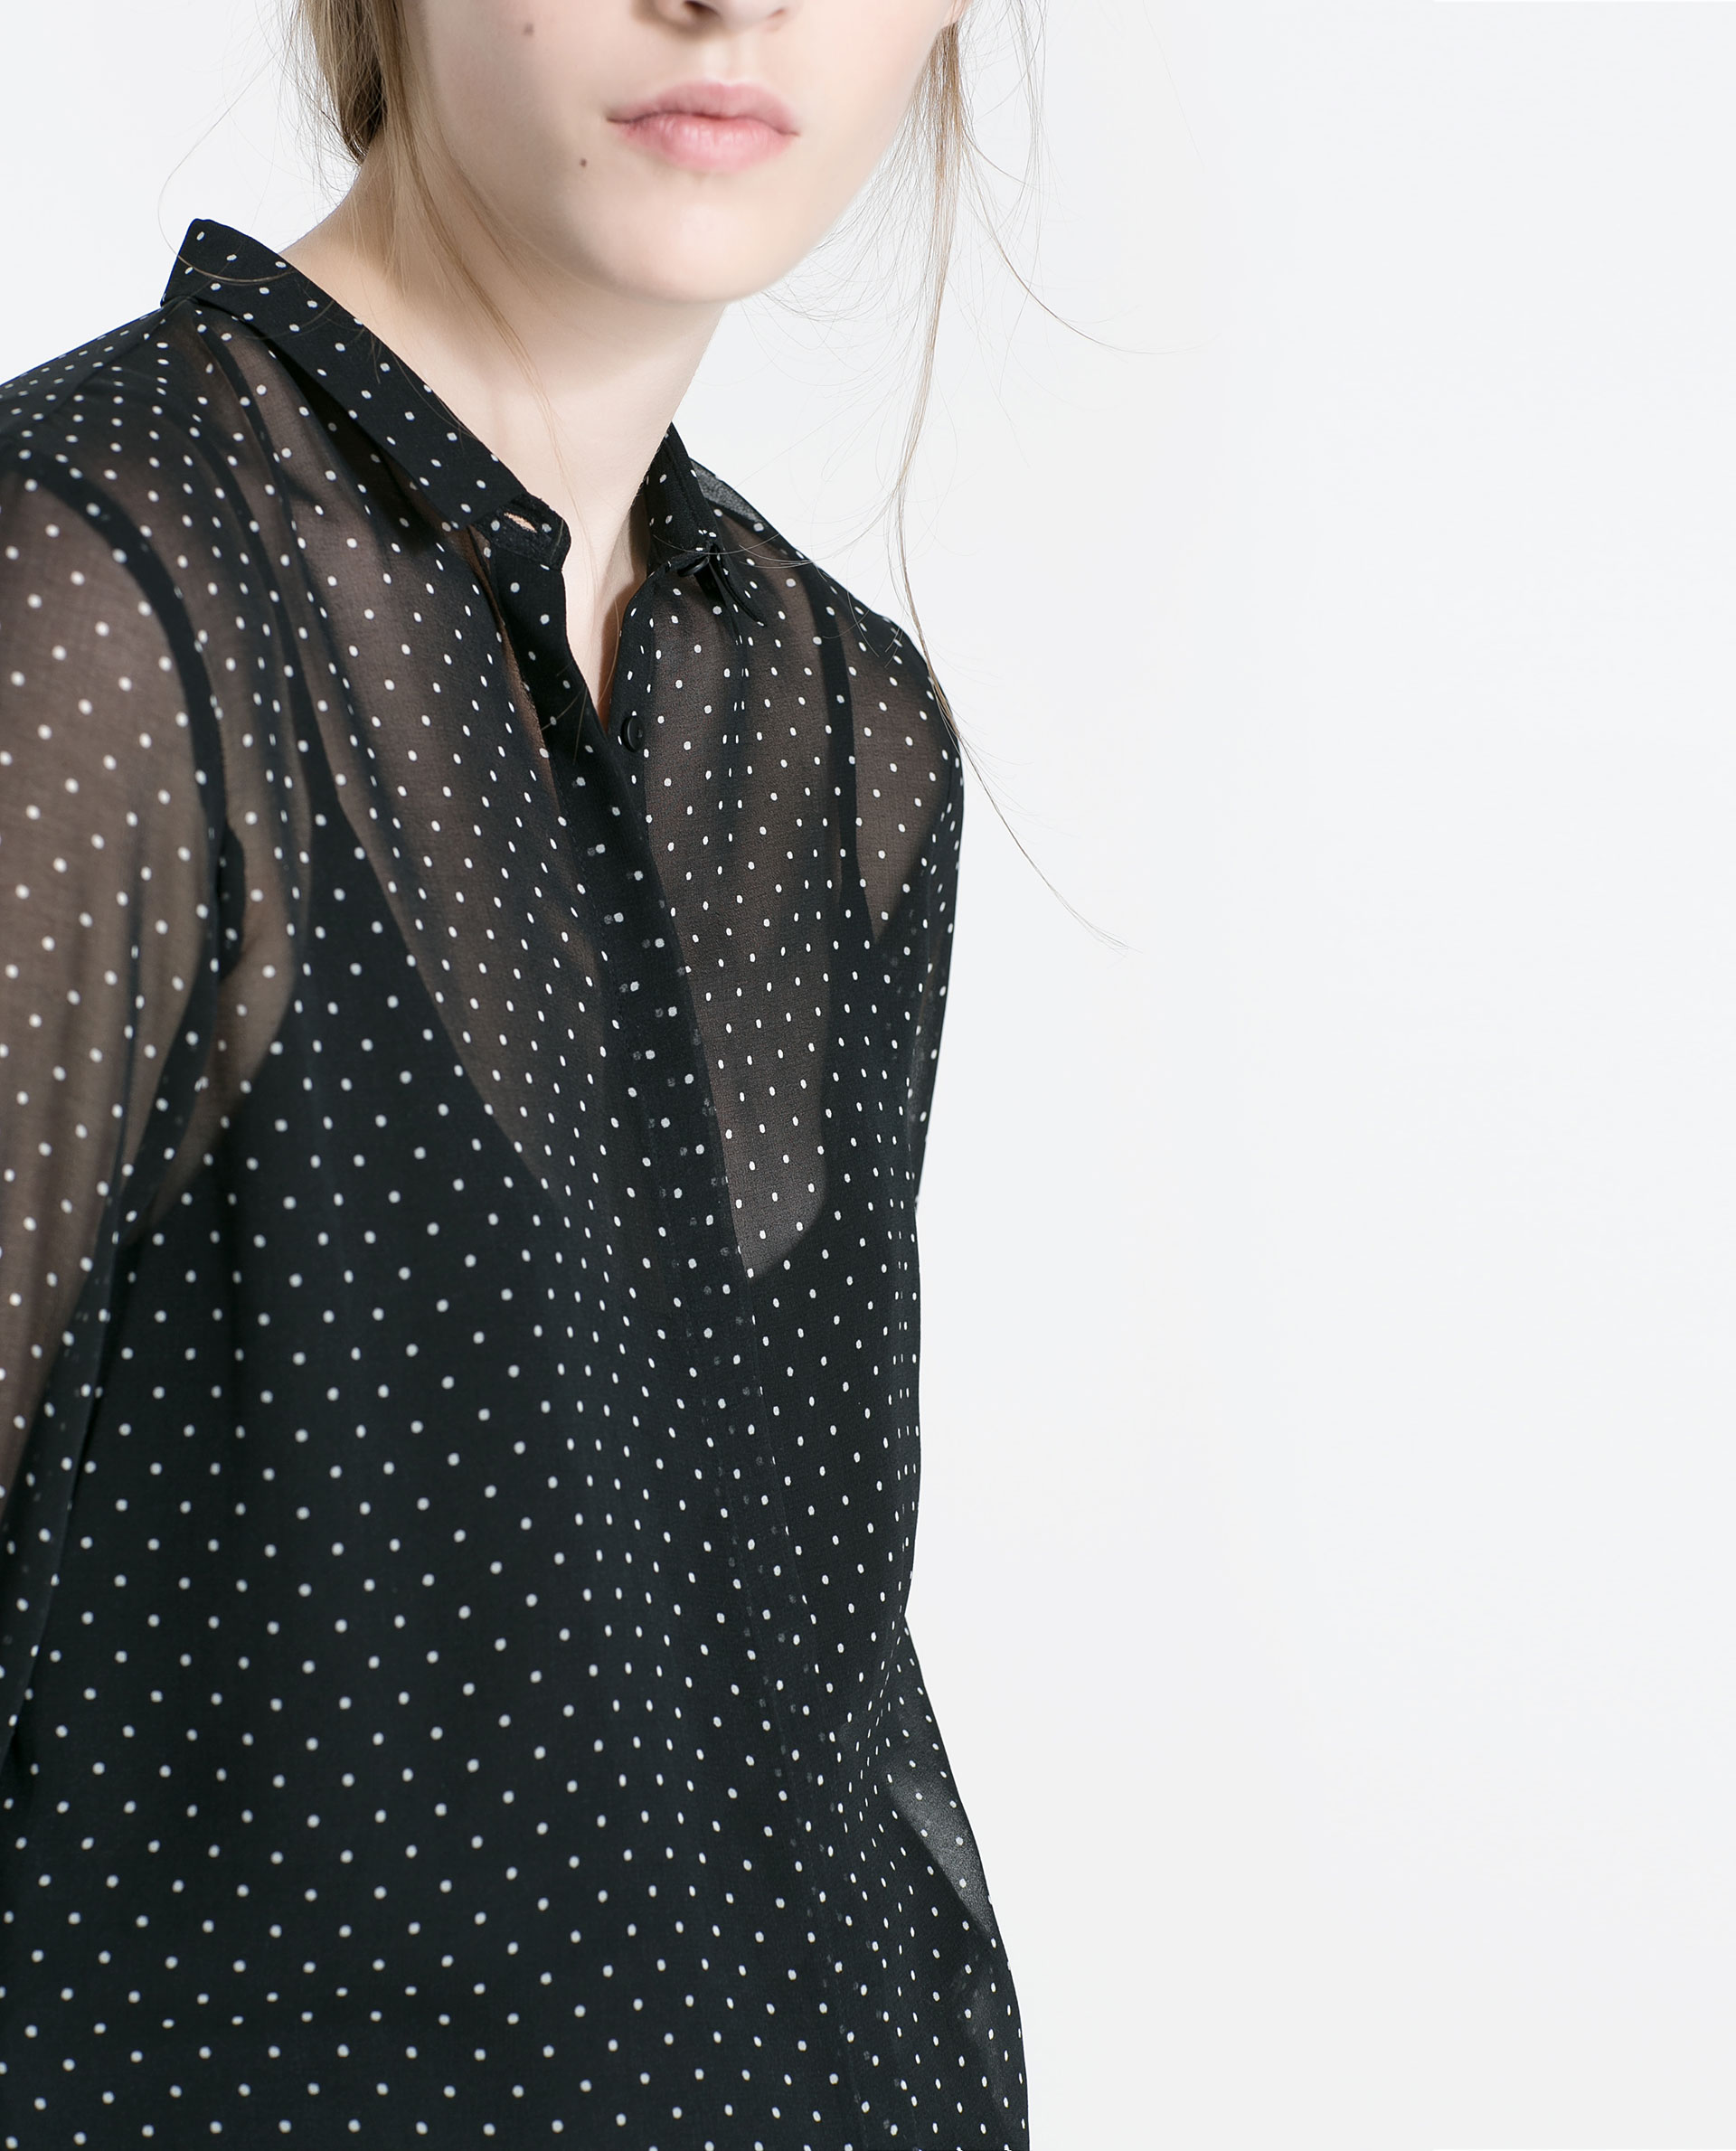 Zara Sheer Black Blouse 83